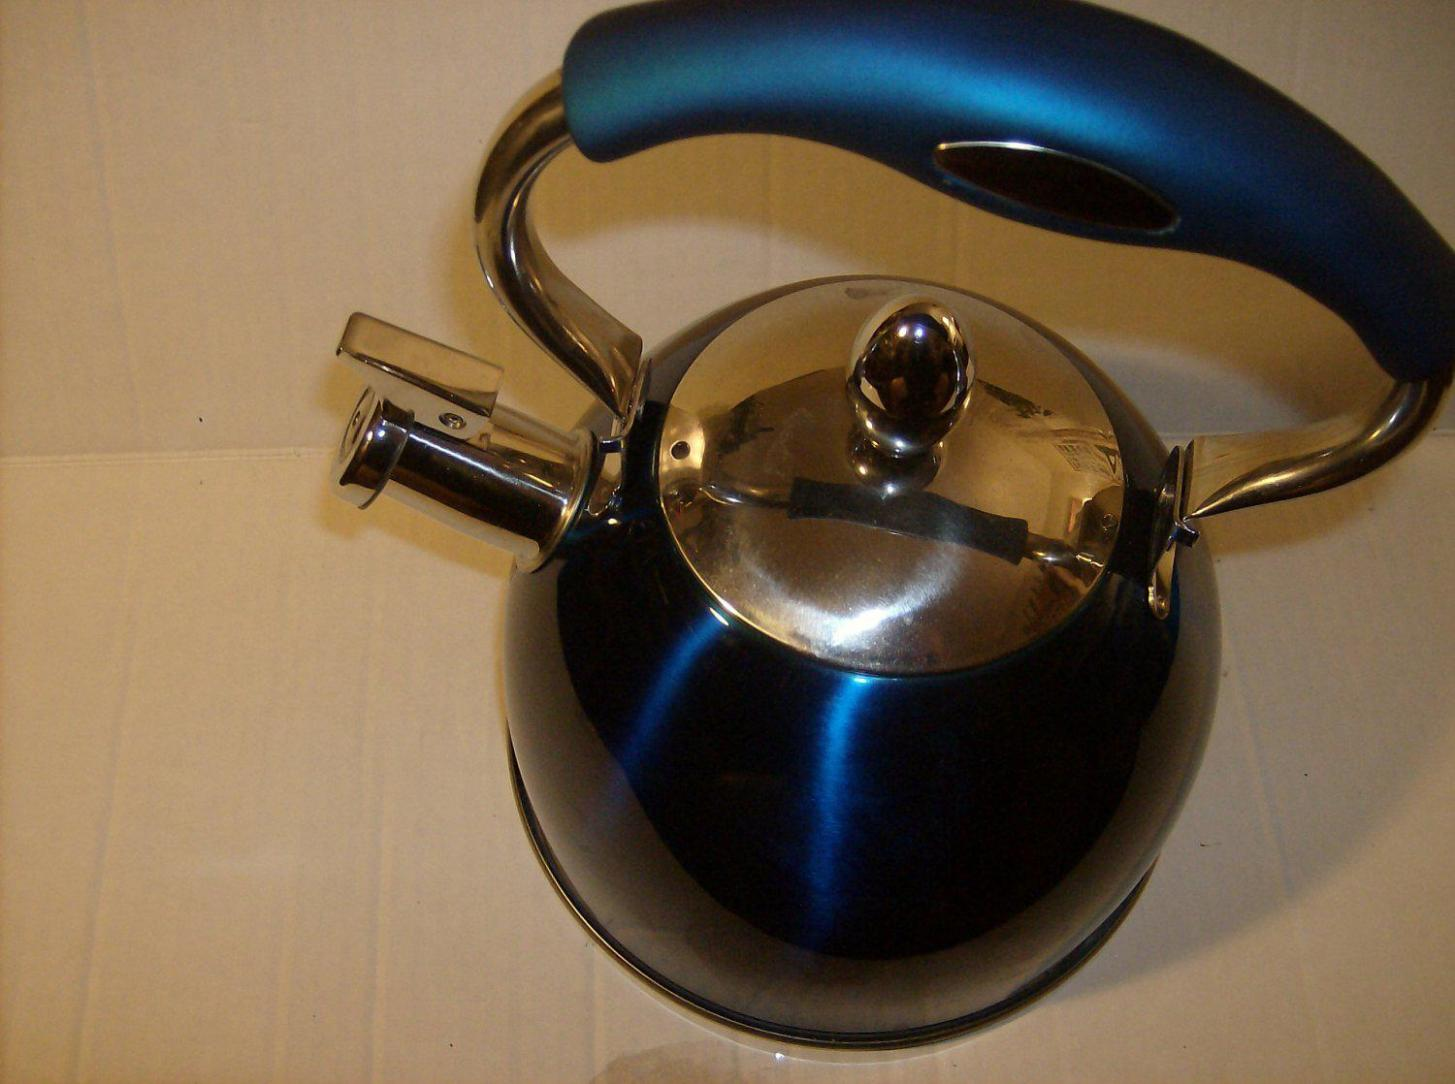 Image of: Stainless Steel Tea Kettle Made In Usa